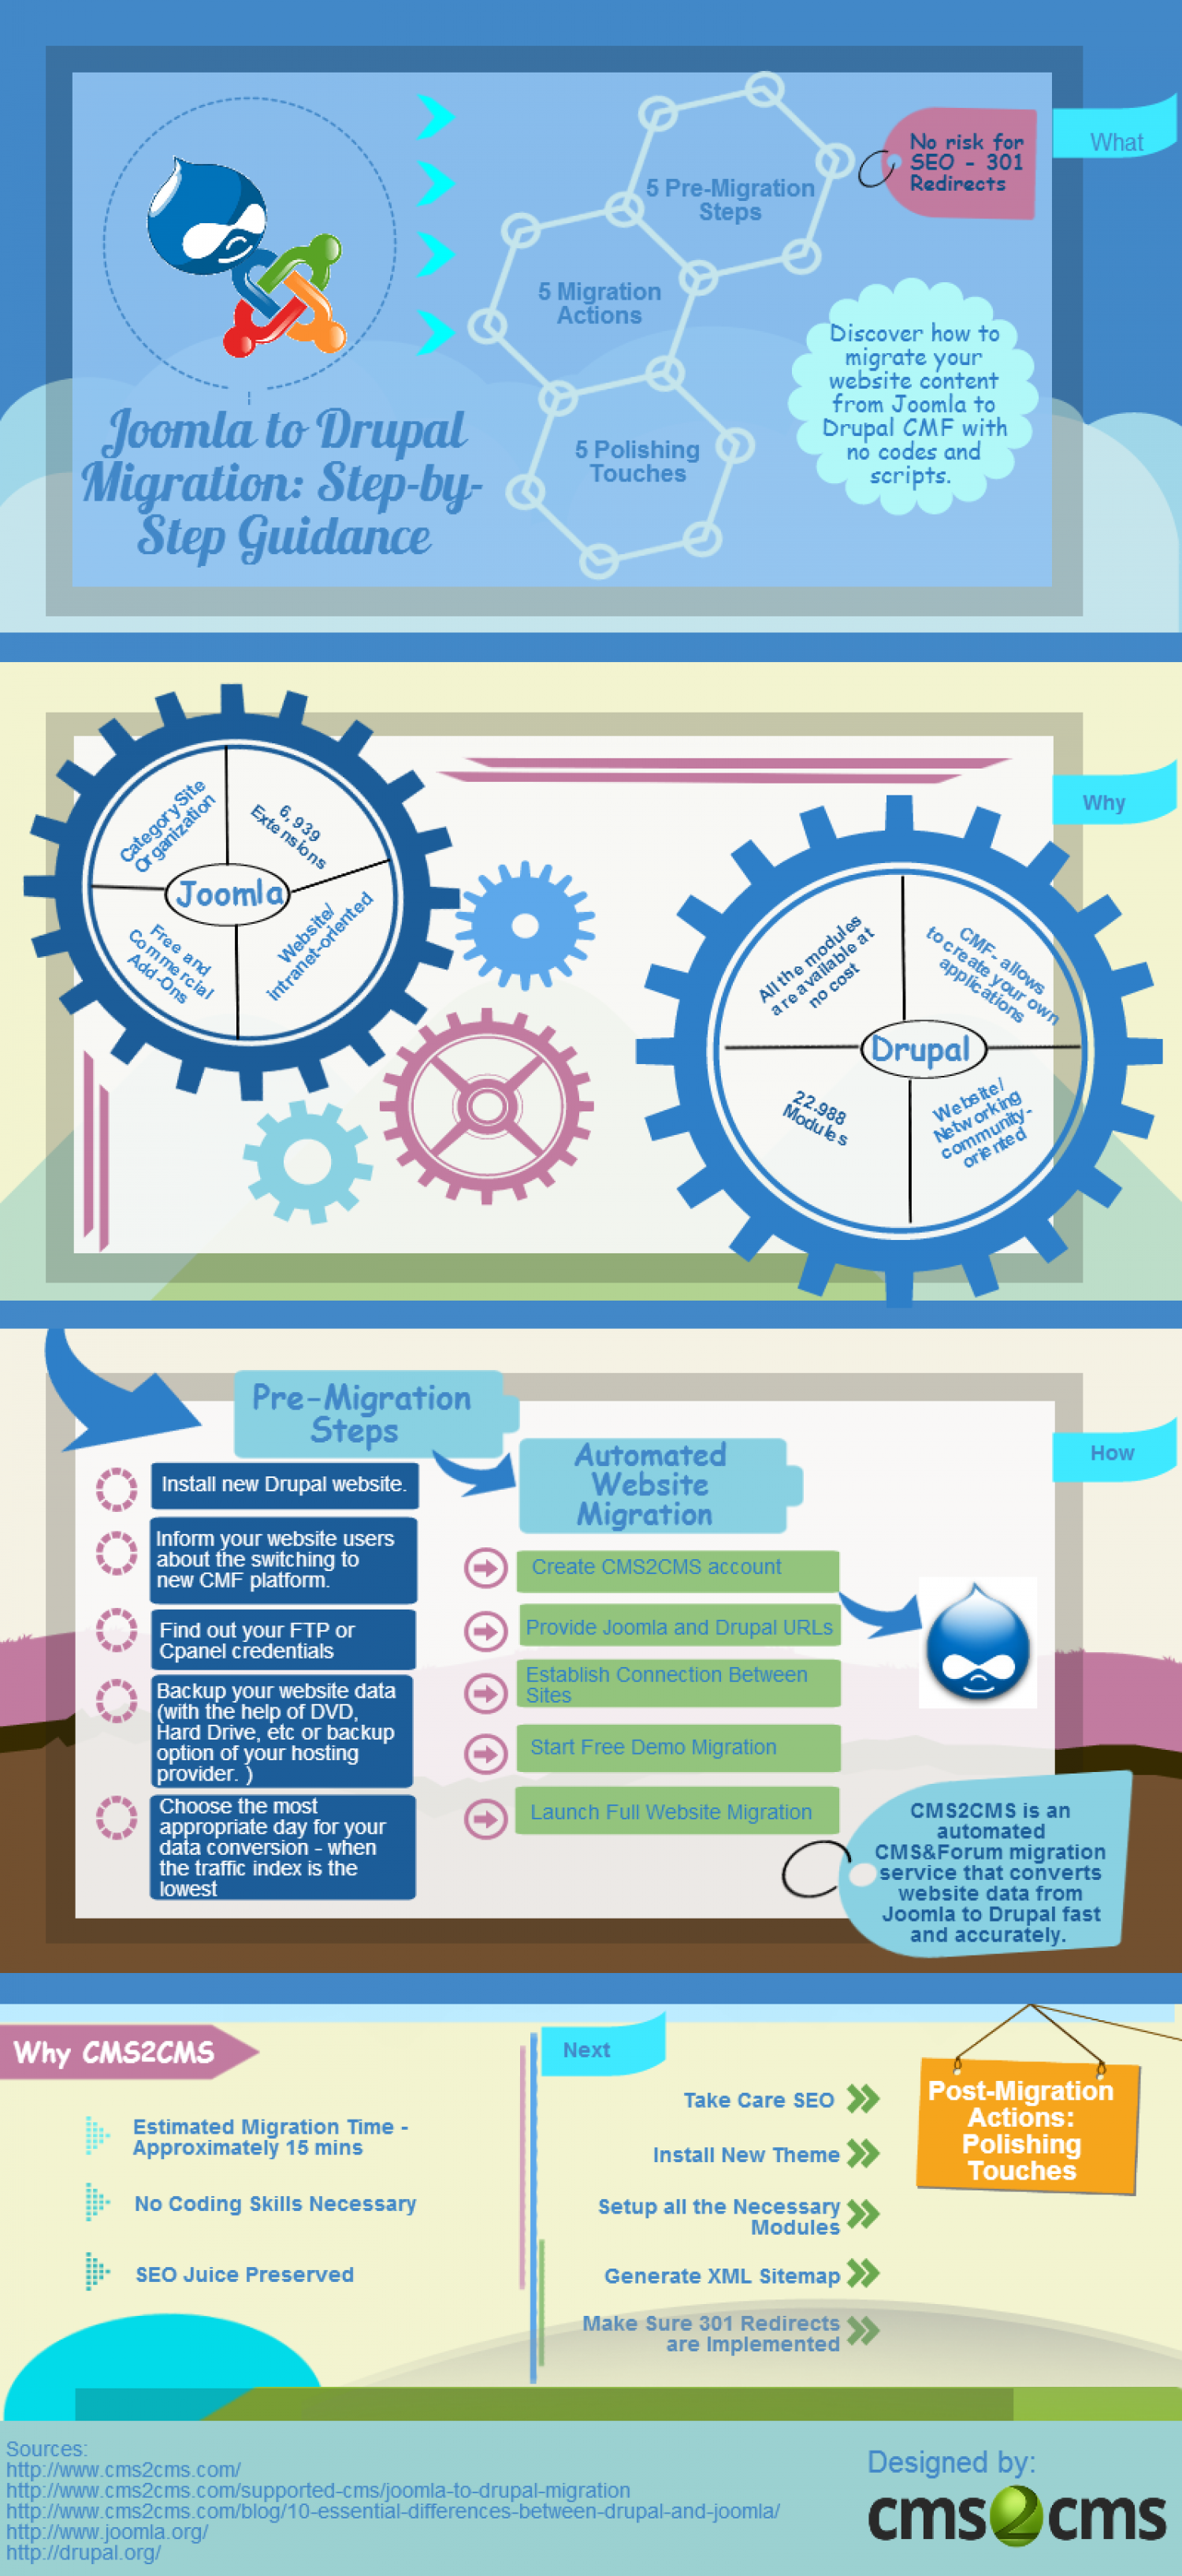 Joomla to Drupal Migration: Step-by-Step Guidance Infographic